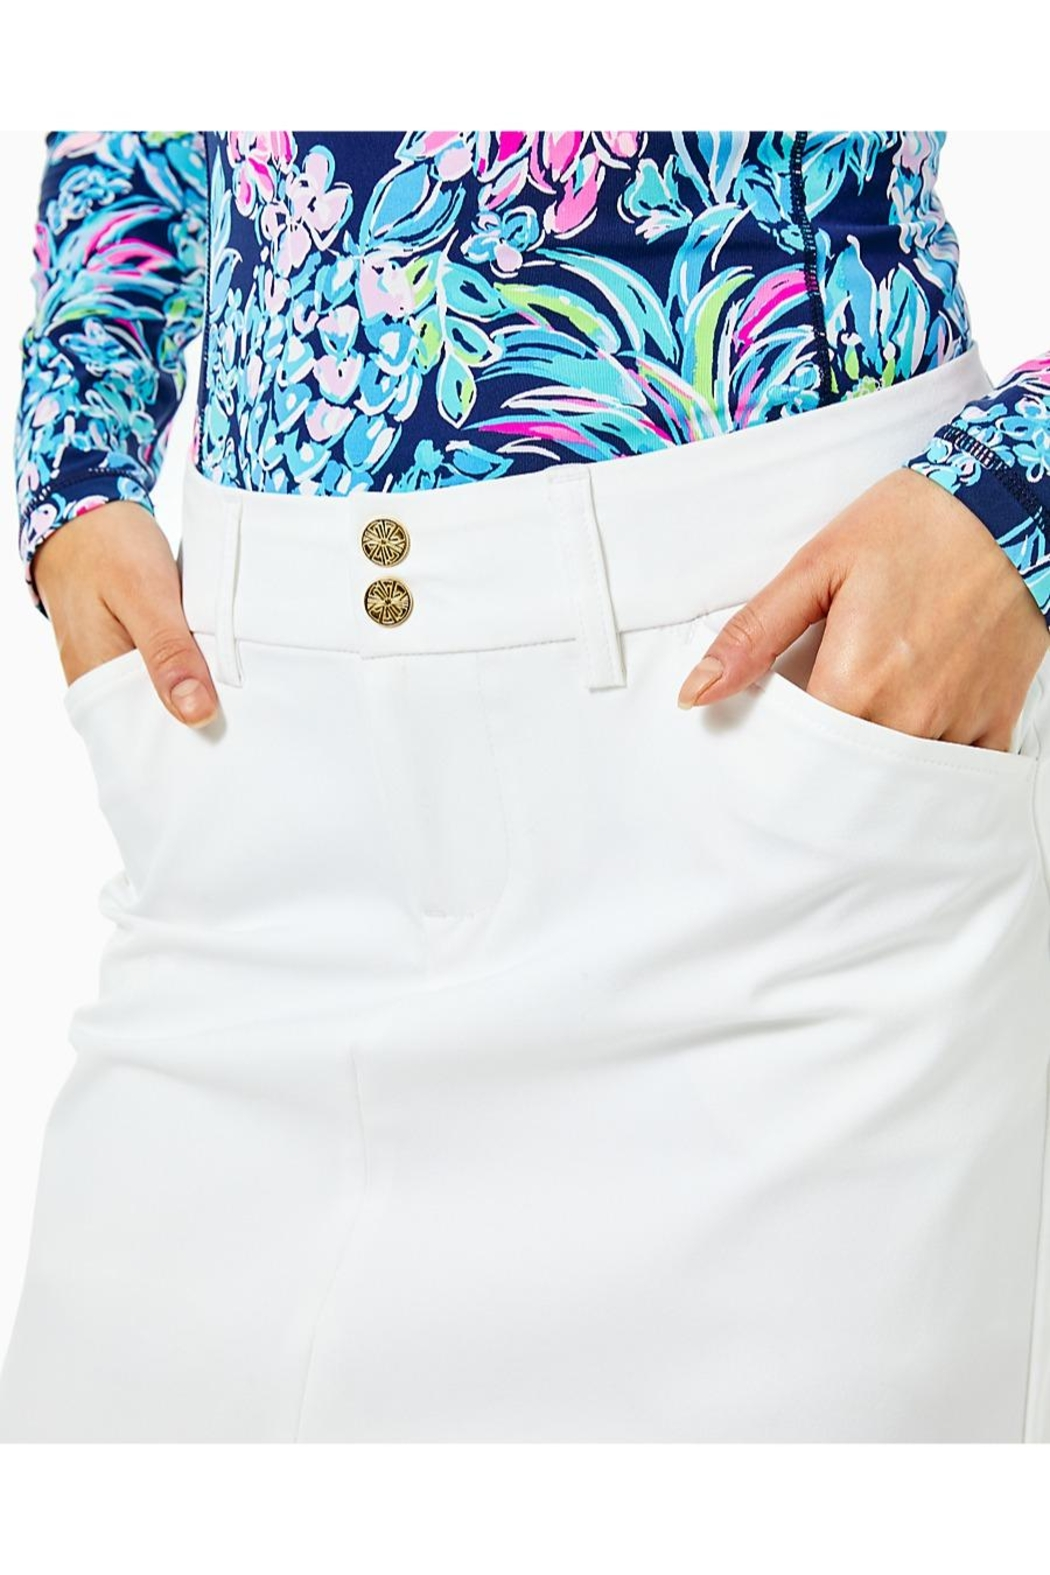 Lilly Pulitzer Luxletic Sybil Skort - Back Cropped Image